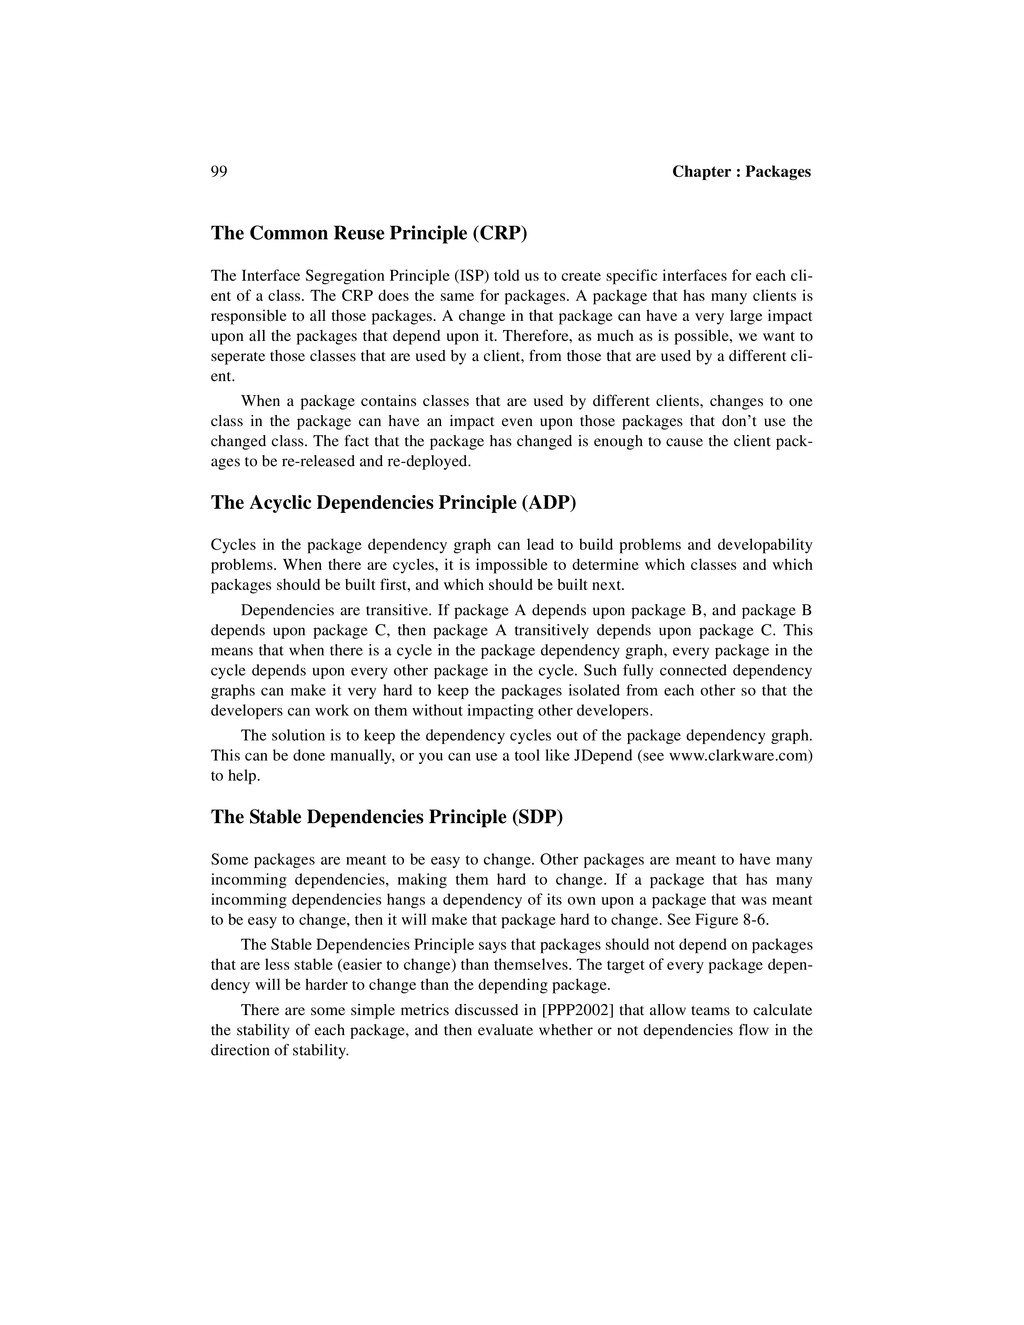 99 Chapter : Packages The Common Reuse Principl...